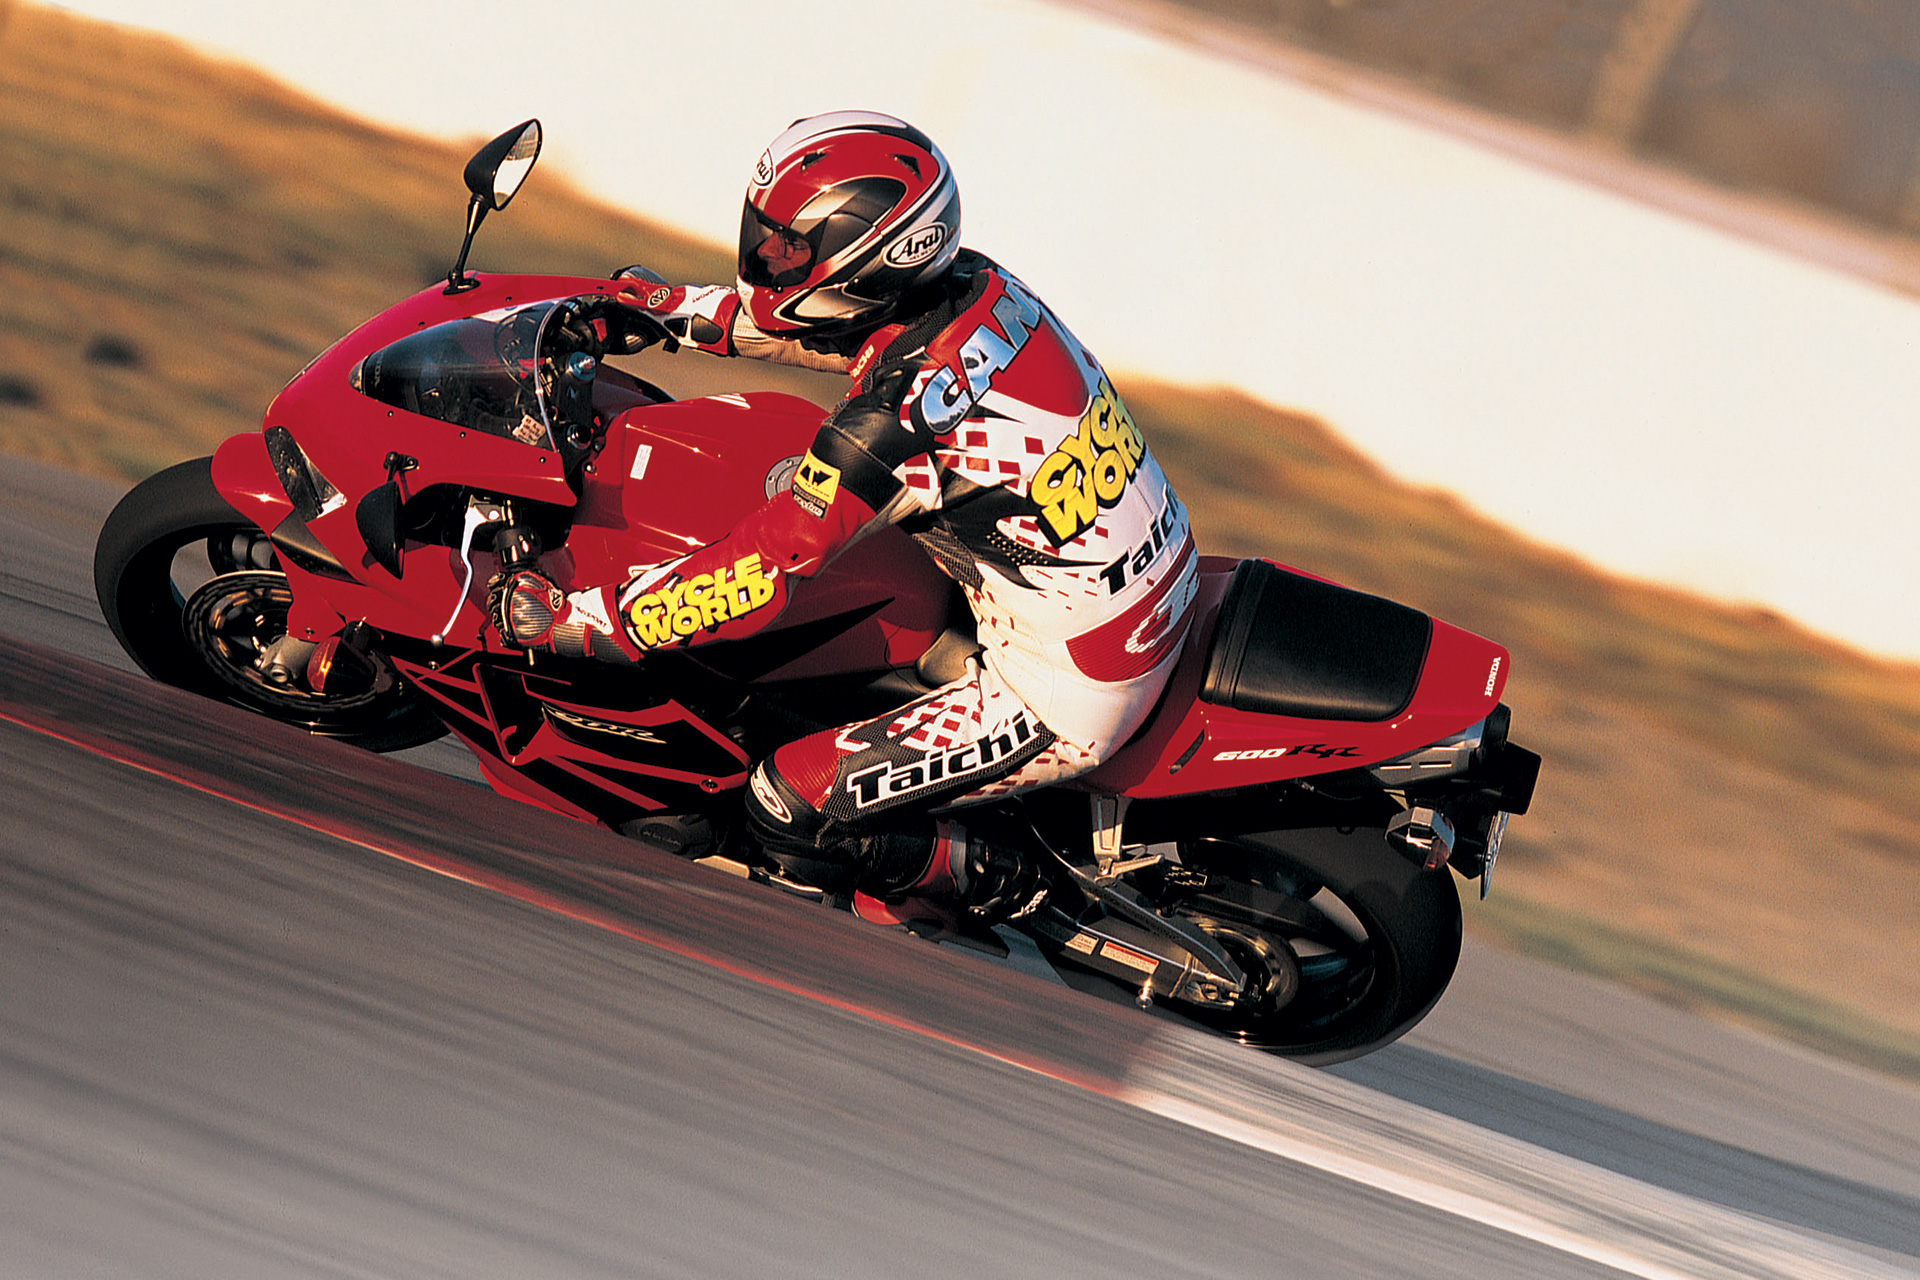 Middleweight 600cc Sportbike Motorcycle Review & Comparison